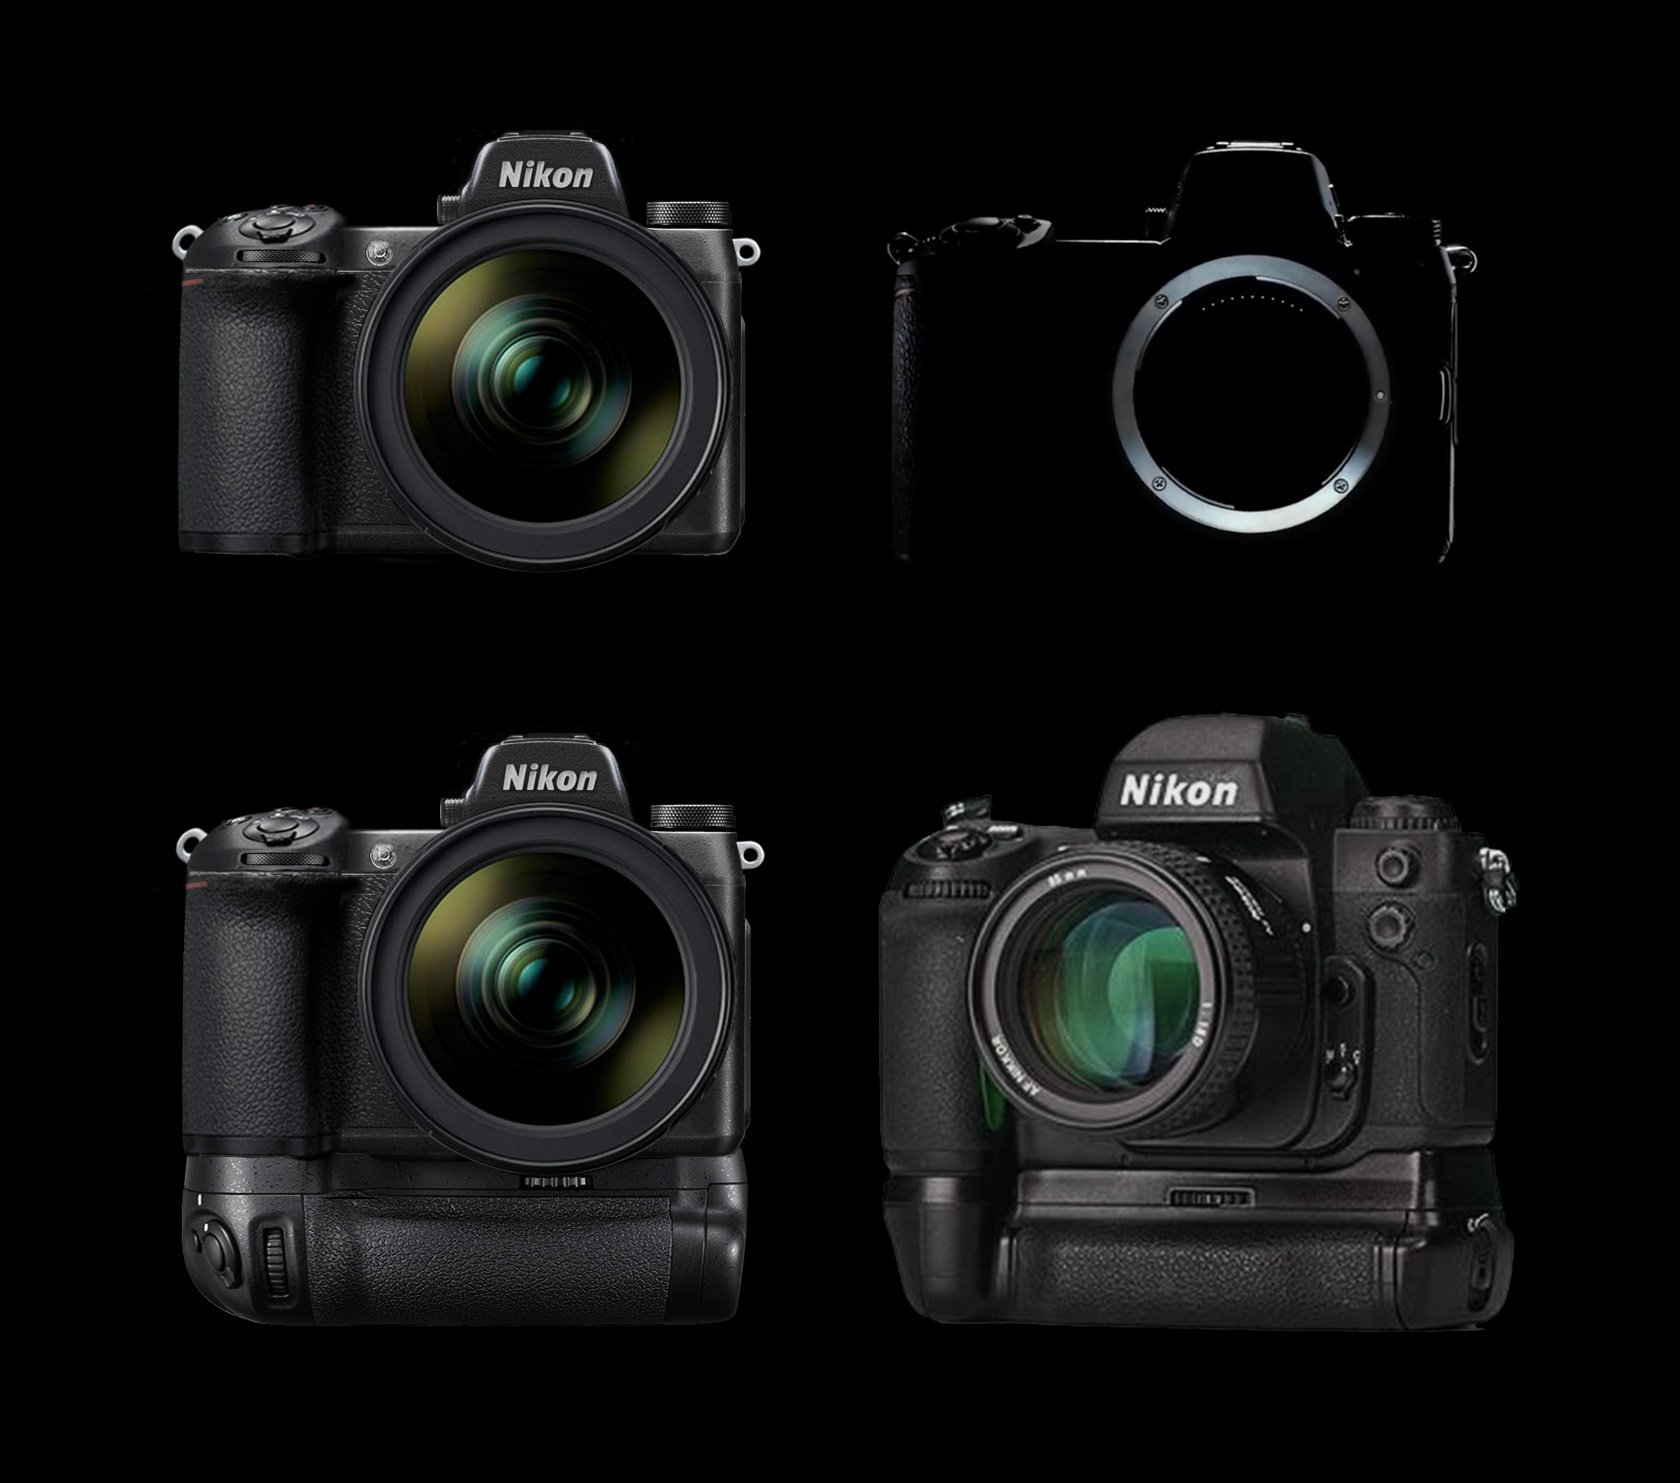 NIKON'S NEW MIRRORLESS CAMERA TO BE ANNOUNCED NEXT WEEK, HERE ARE THE RUMORED SPECS